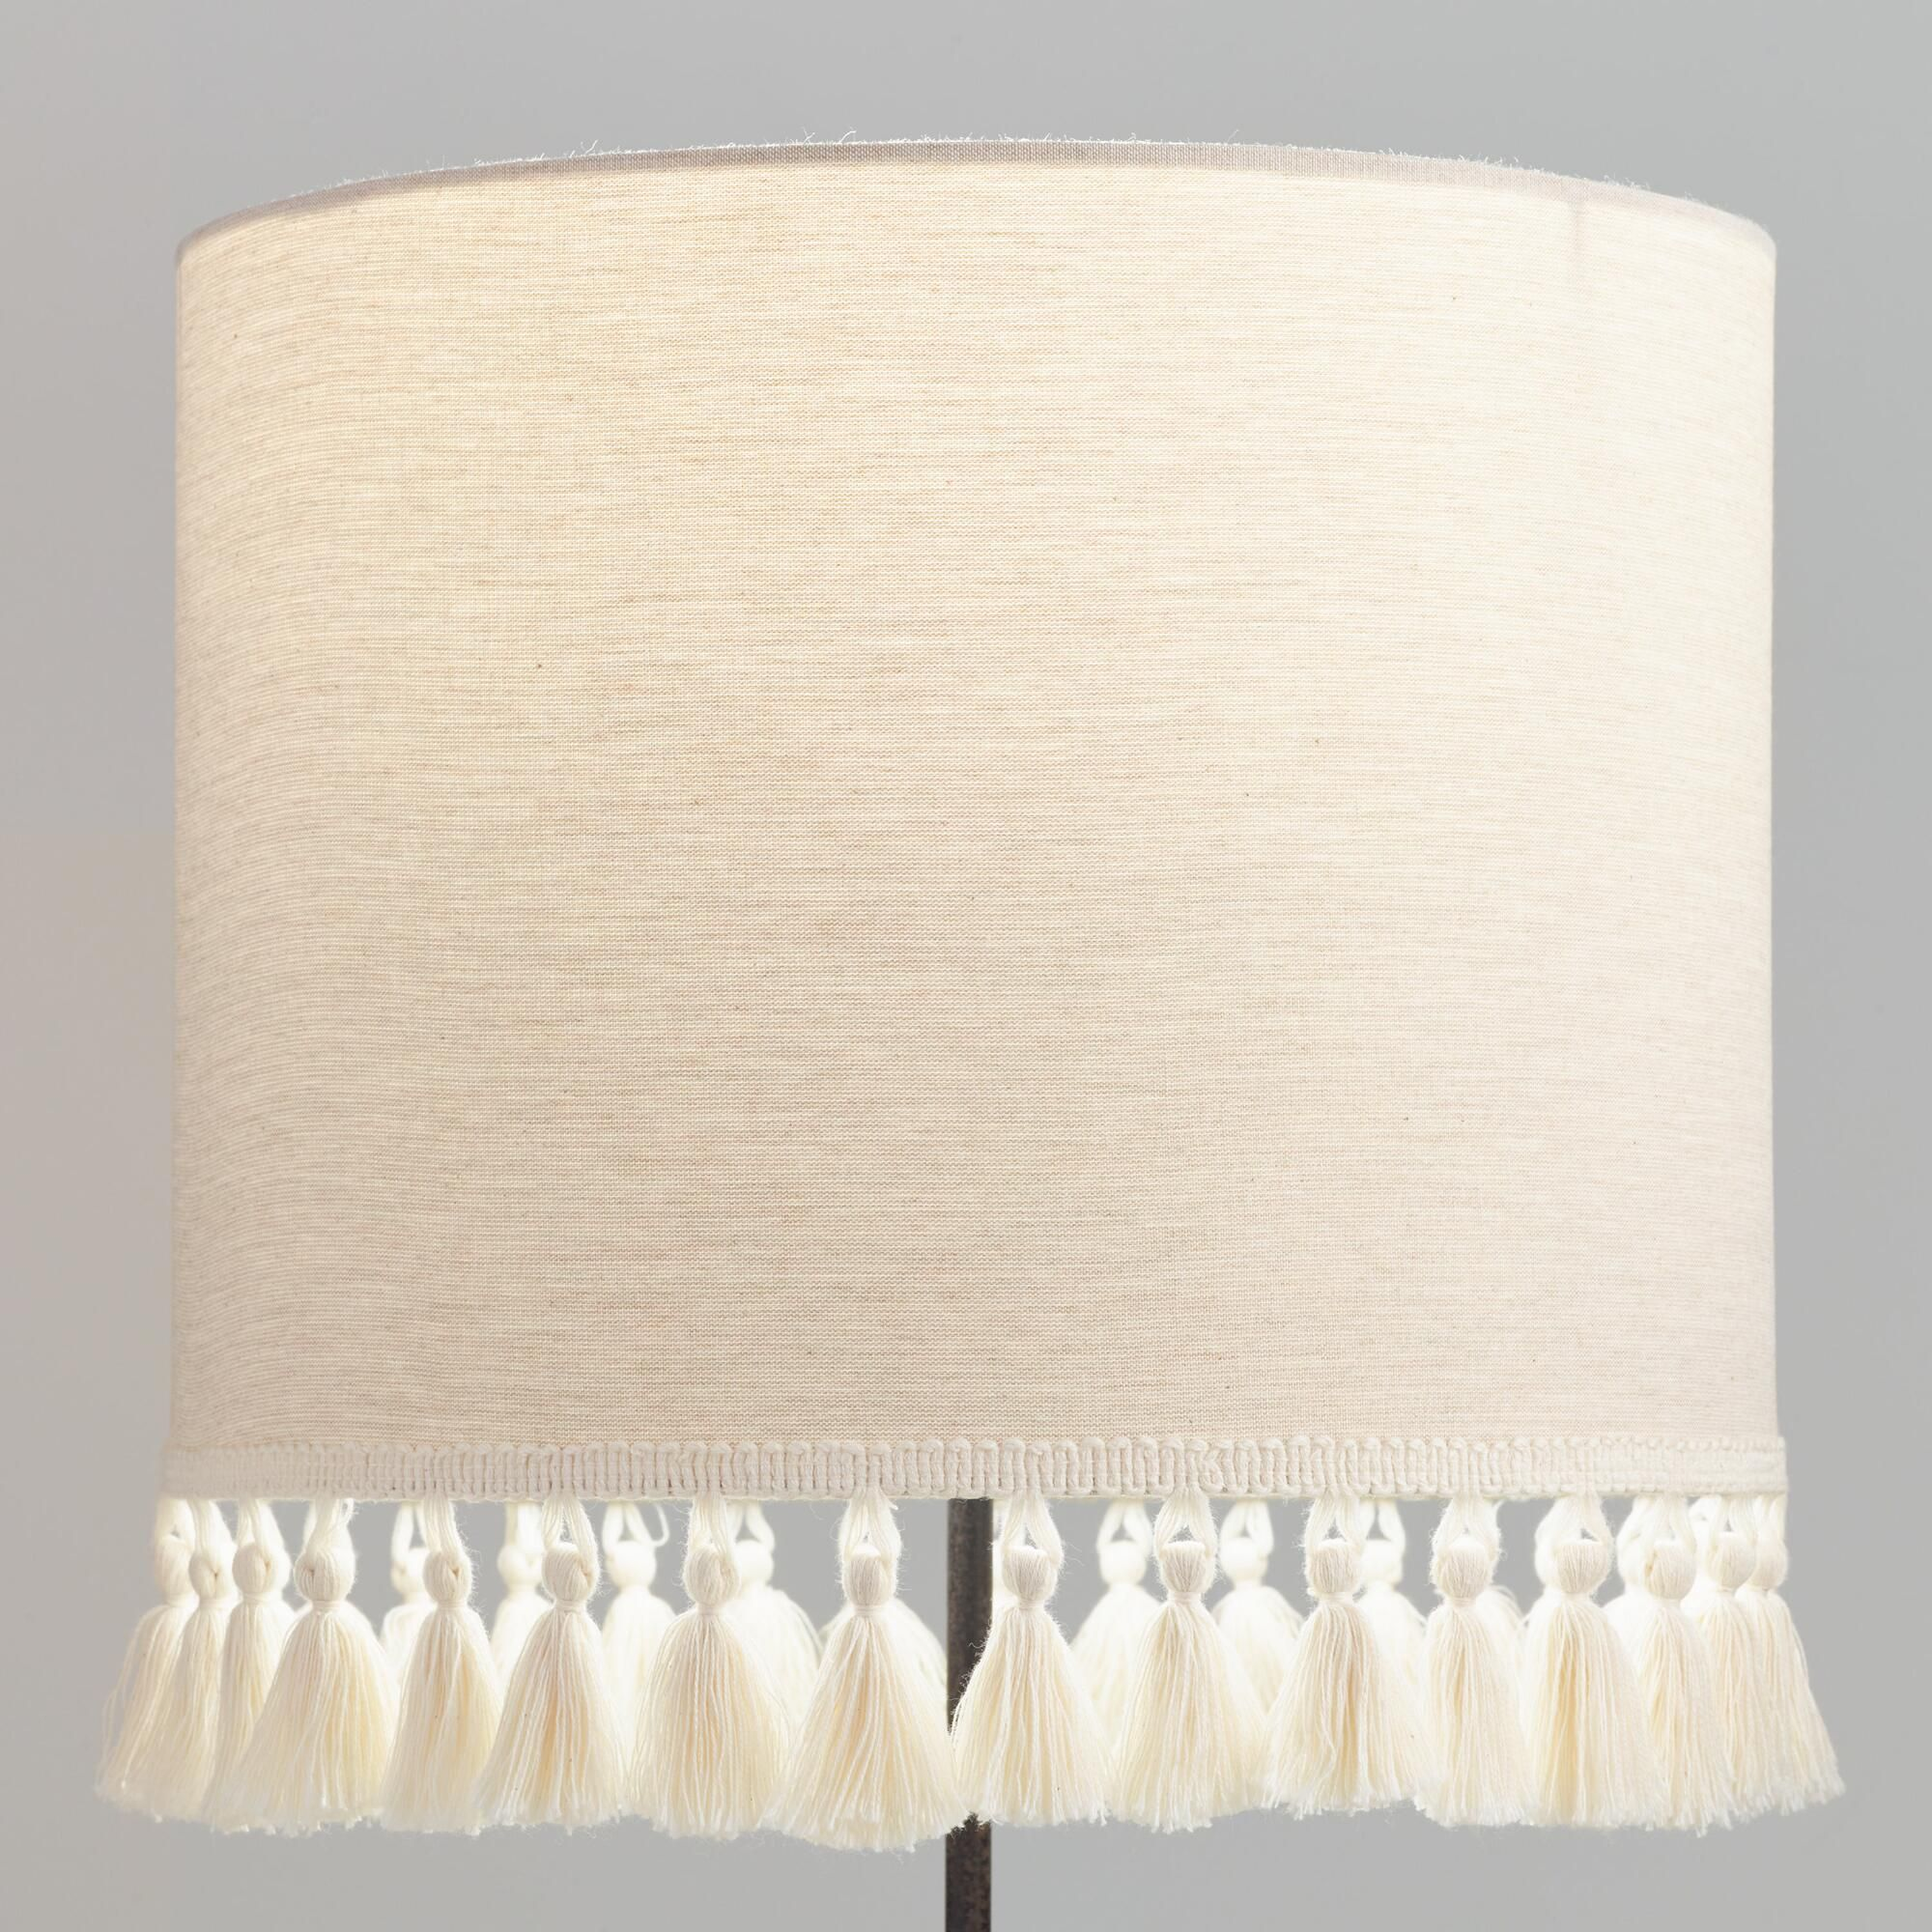 Natural Linen Drum Table Lamp Shade With Light Gray